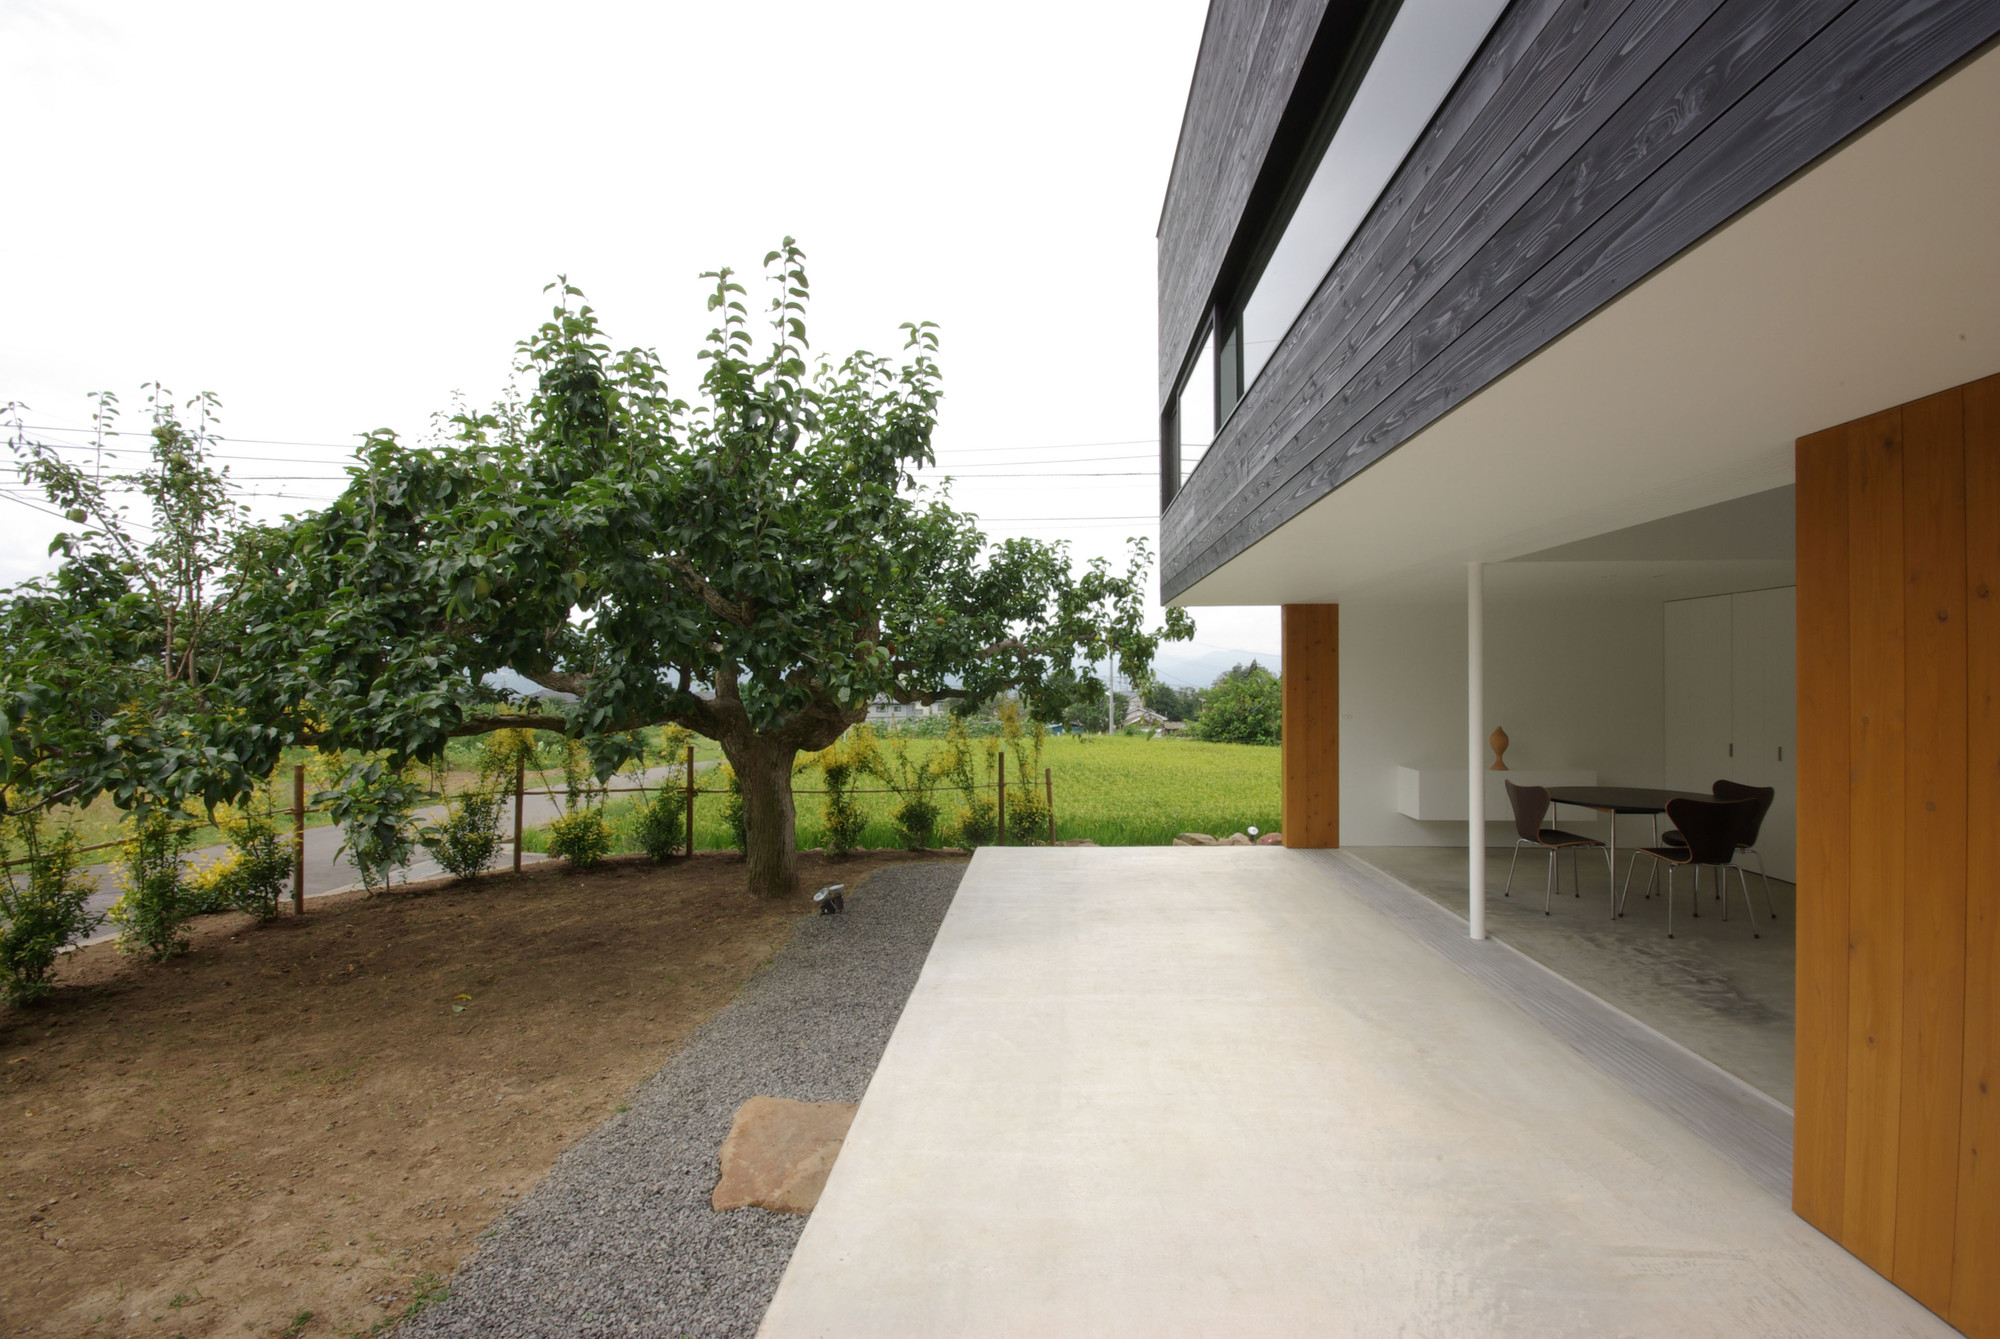 House in Ueda / Case Design Studio, Courtesy of Case Design Studio